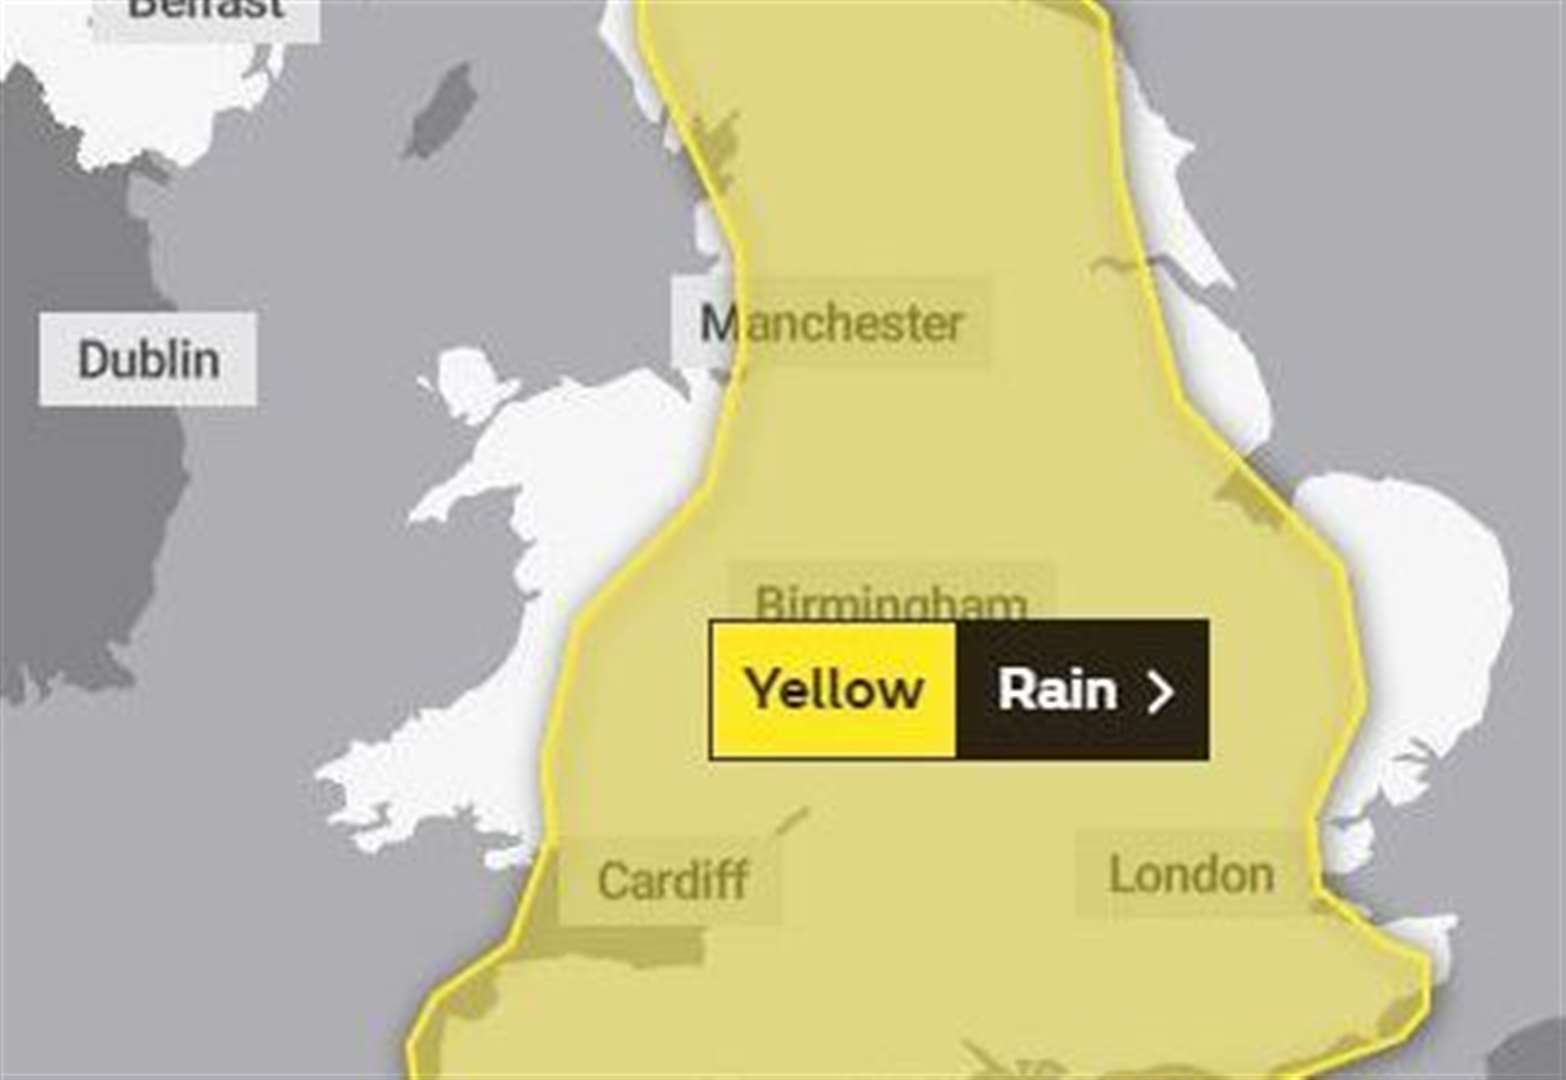 The Met Office has issued a yellow weather warning after heavy rain and thunder storms are forecast